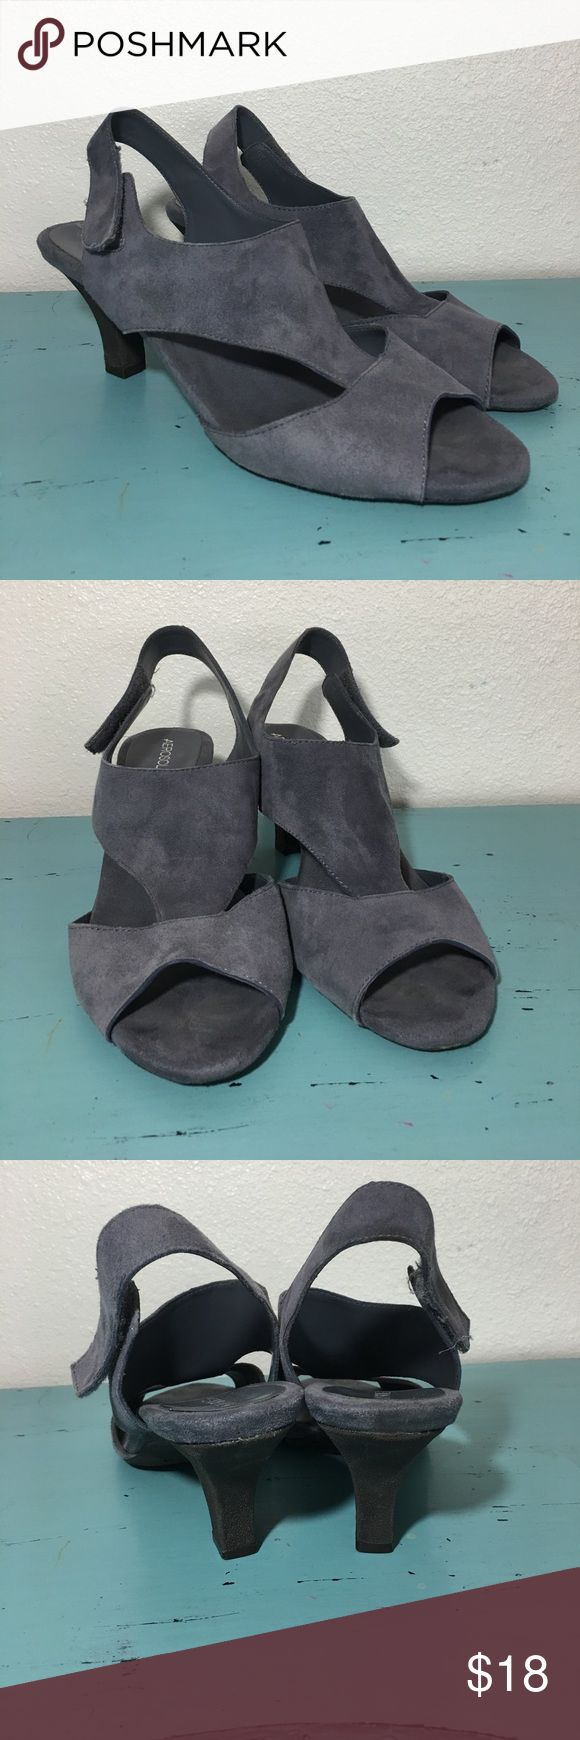 "Aerosoles gray suede heels with Velcro straps Heel is approx 2.75"" high. Velcro straps. Size 12m faximilian leather upper. . 🛒🛍 offers on bundles are considered AEROSOLES Shoes"